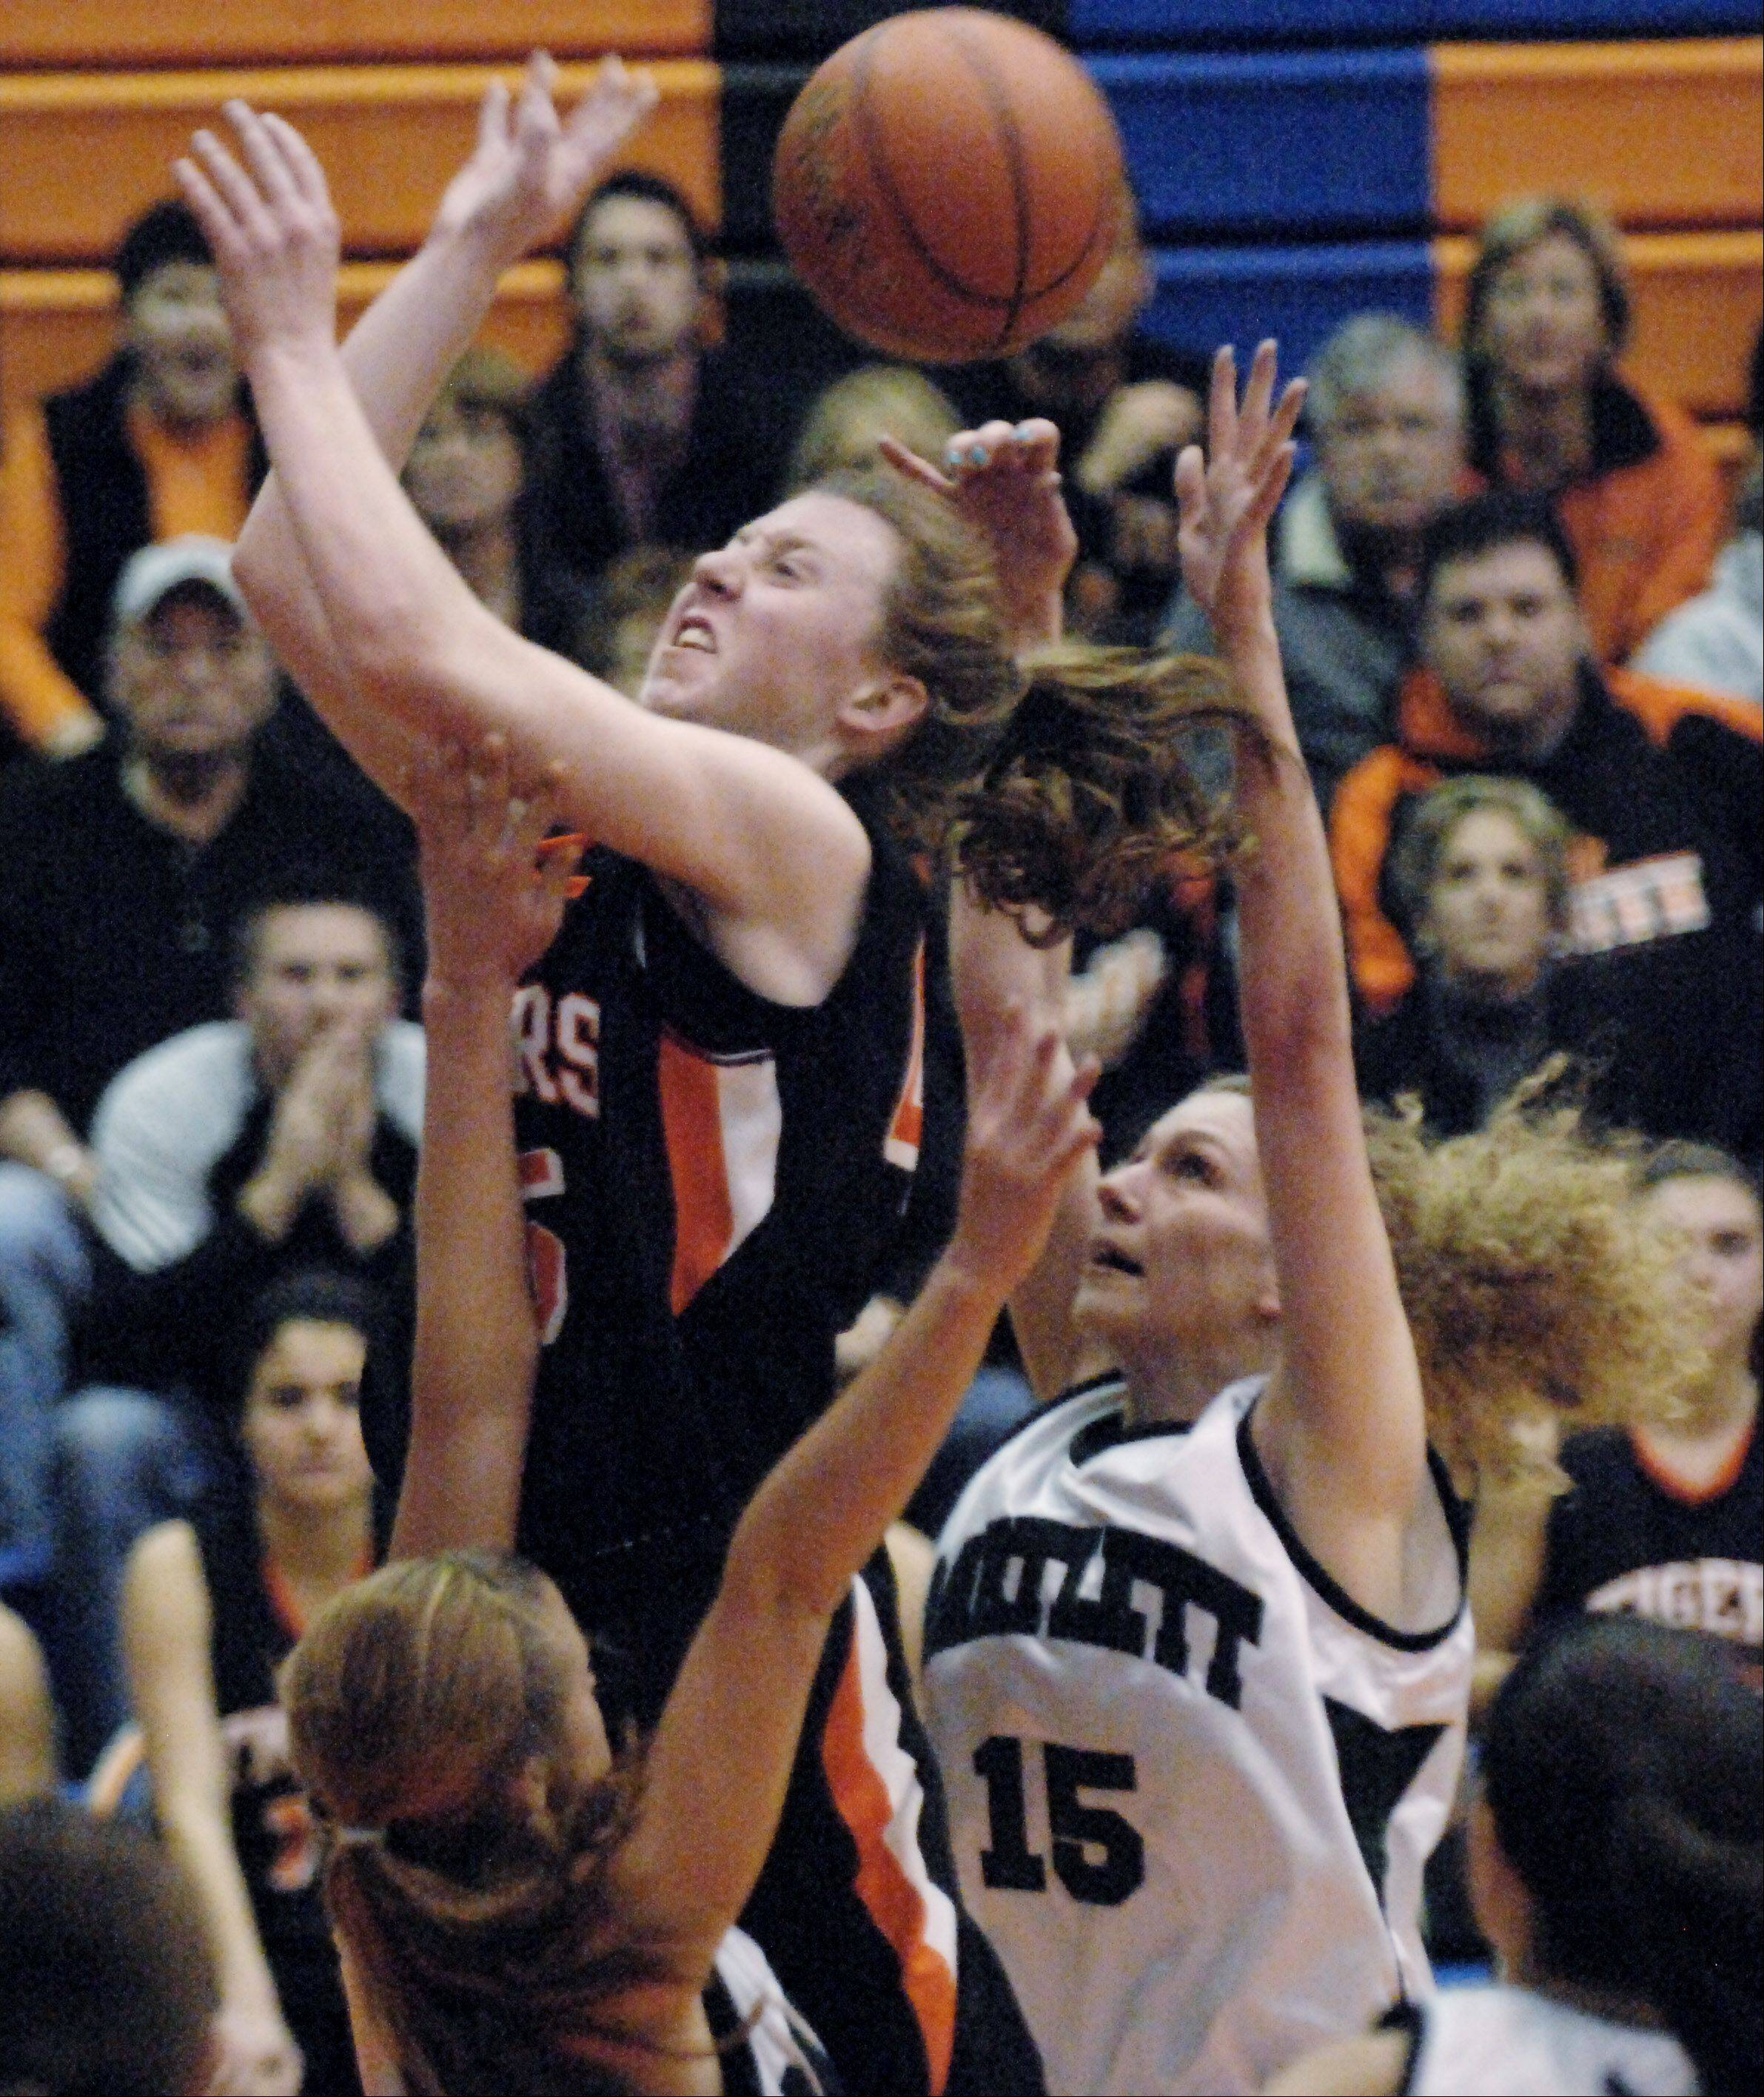 Wheaton Warrenville South's Meghan Waldron has the ball stripped by Barltett's Katie Gutzwiller as the drives to the basket during Thursday's Class 4A Hoffman Estates sectional championship game.